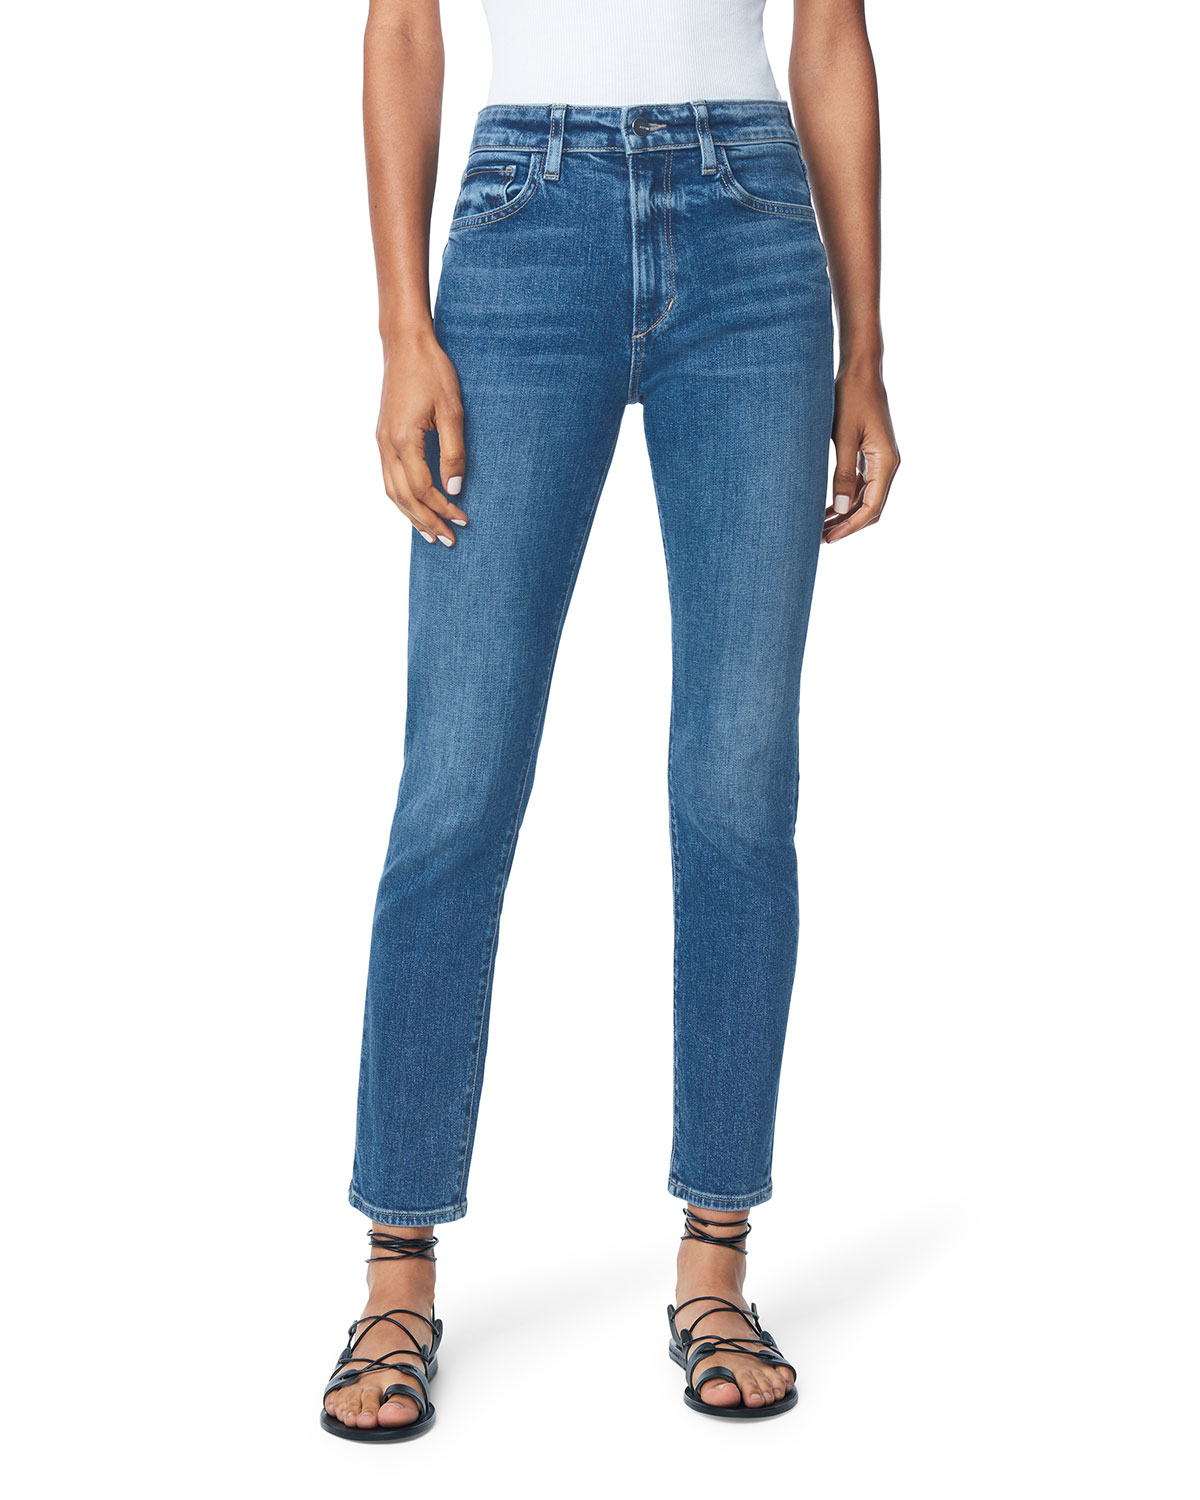 The Erin High-Rise Straight Jeans